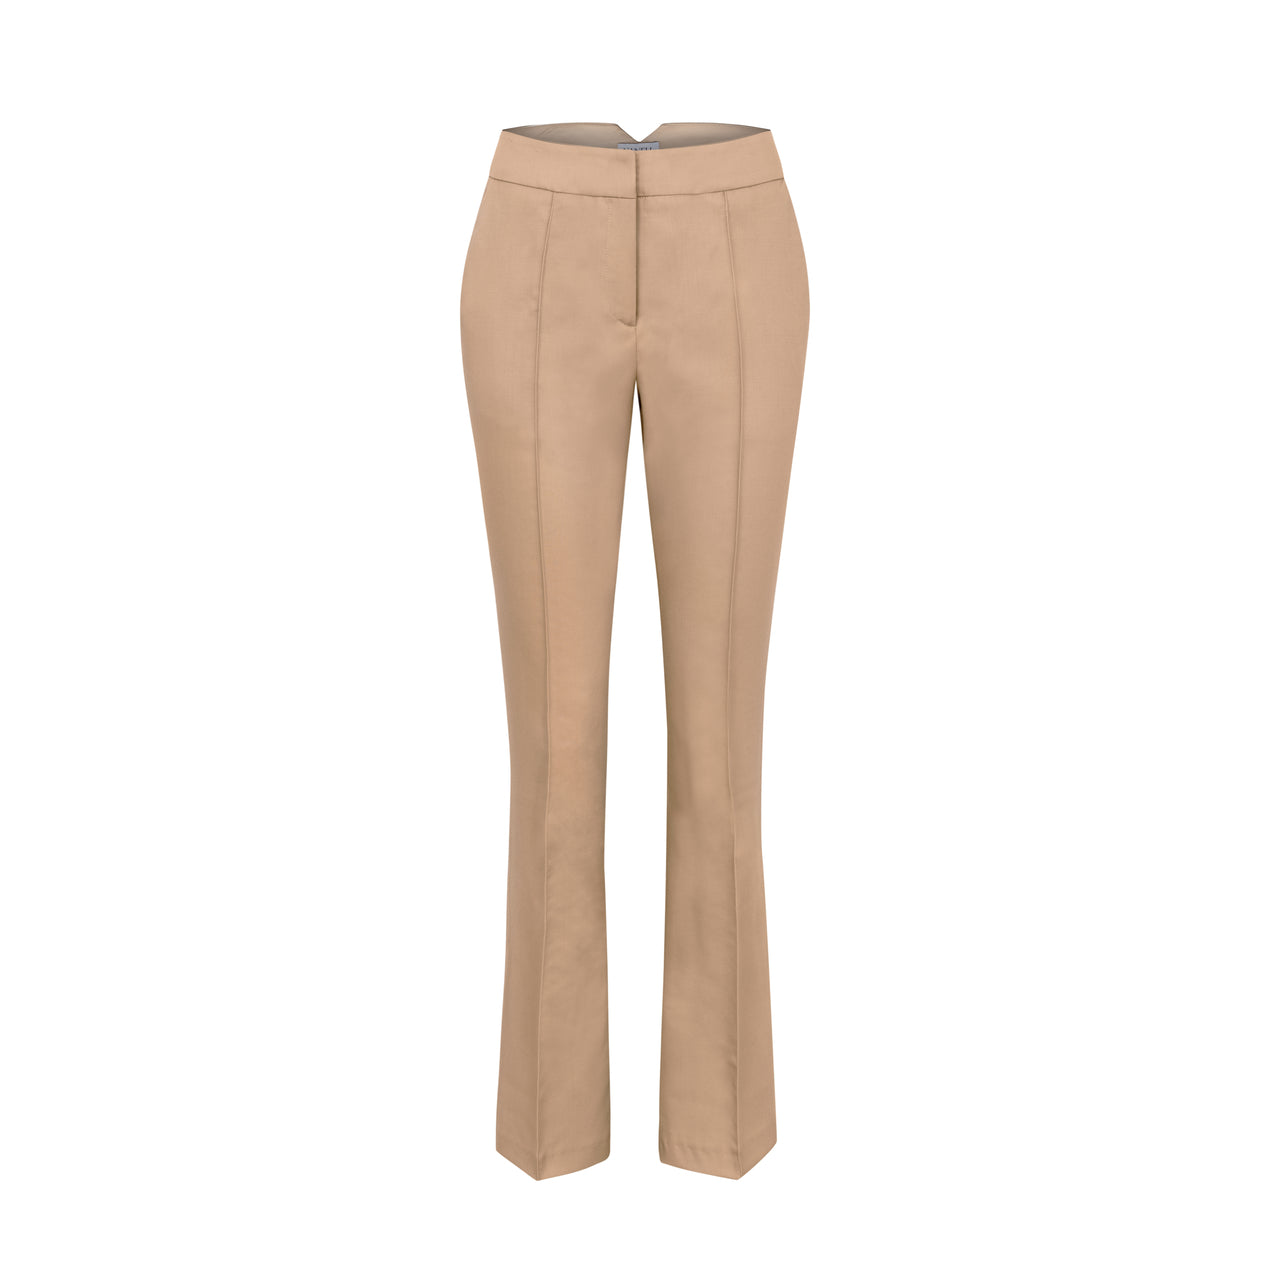 FLEECE LATTE PANTS